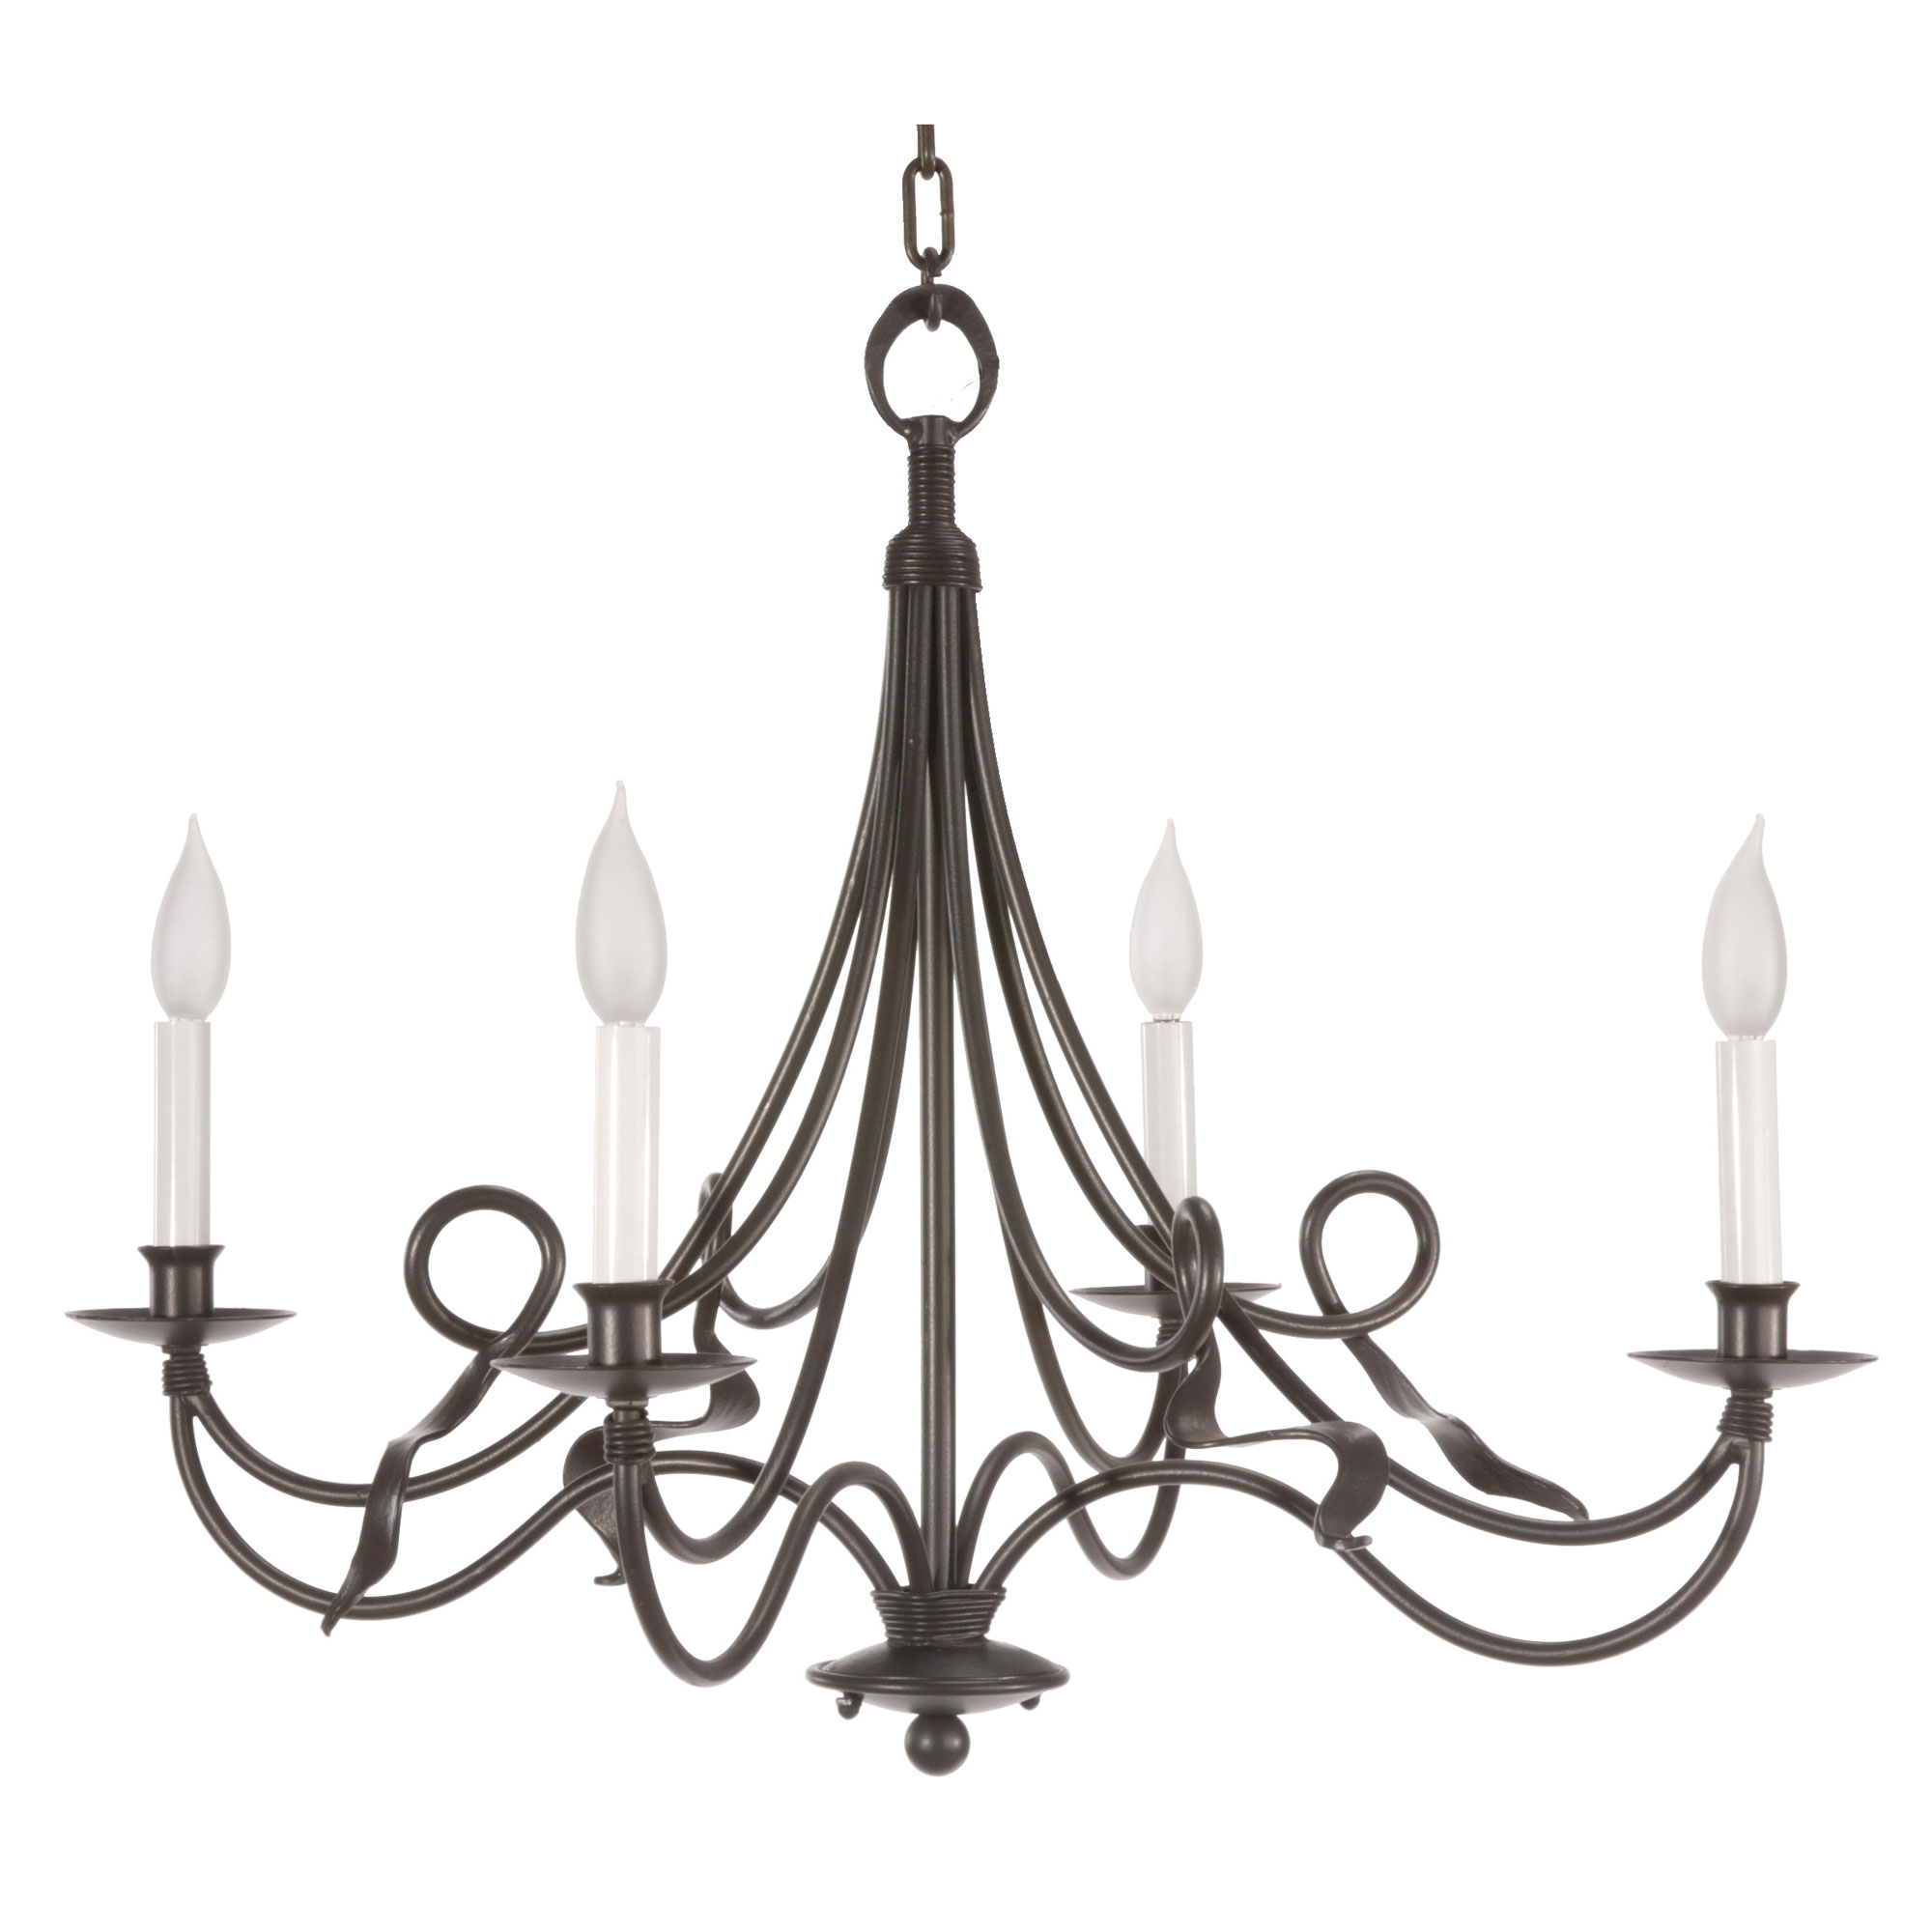 Well Liked Black Color Rustic Cast Iron Chandeliers With Candle Holder For With Regard To Cast Iron Chandelier (View 14 of 15)